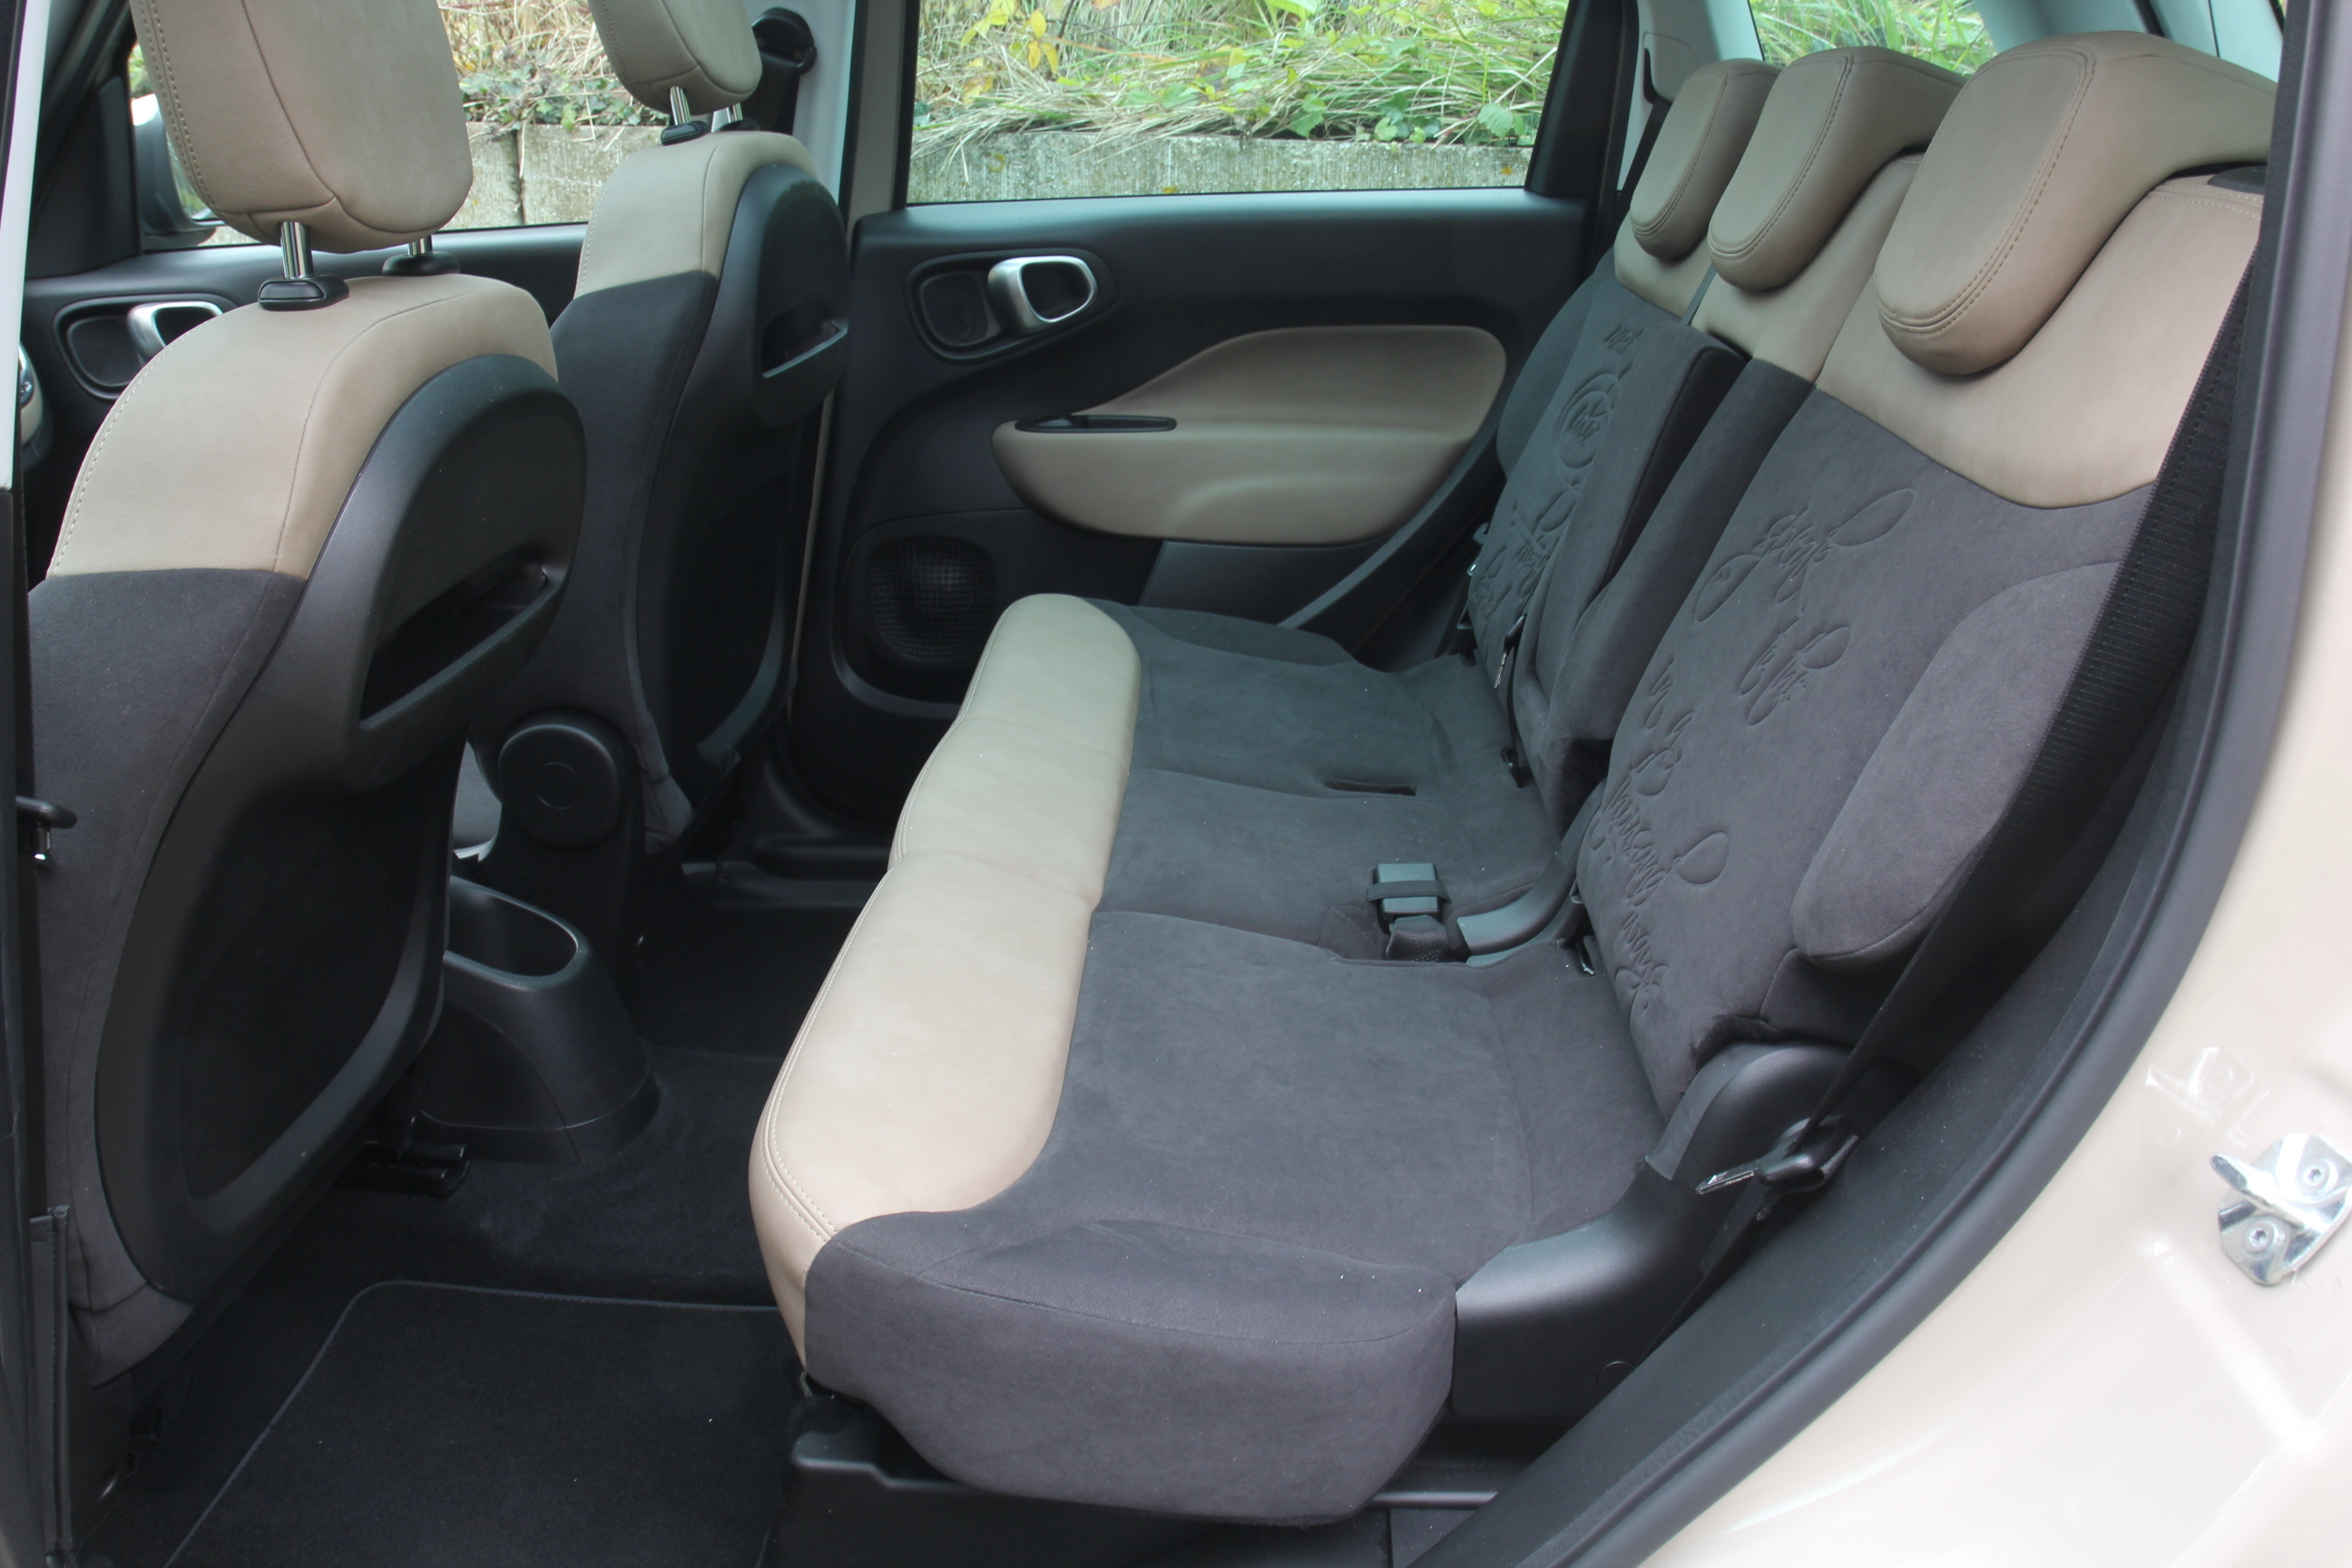 Comparatif ford b max vs fiat 500 l le bapt me du feu for Fiat 500 x interieur